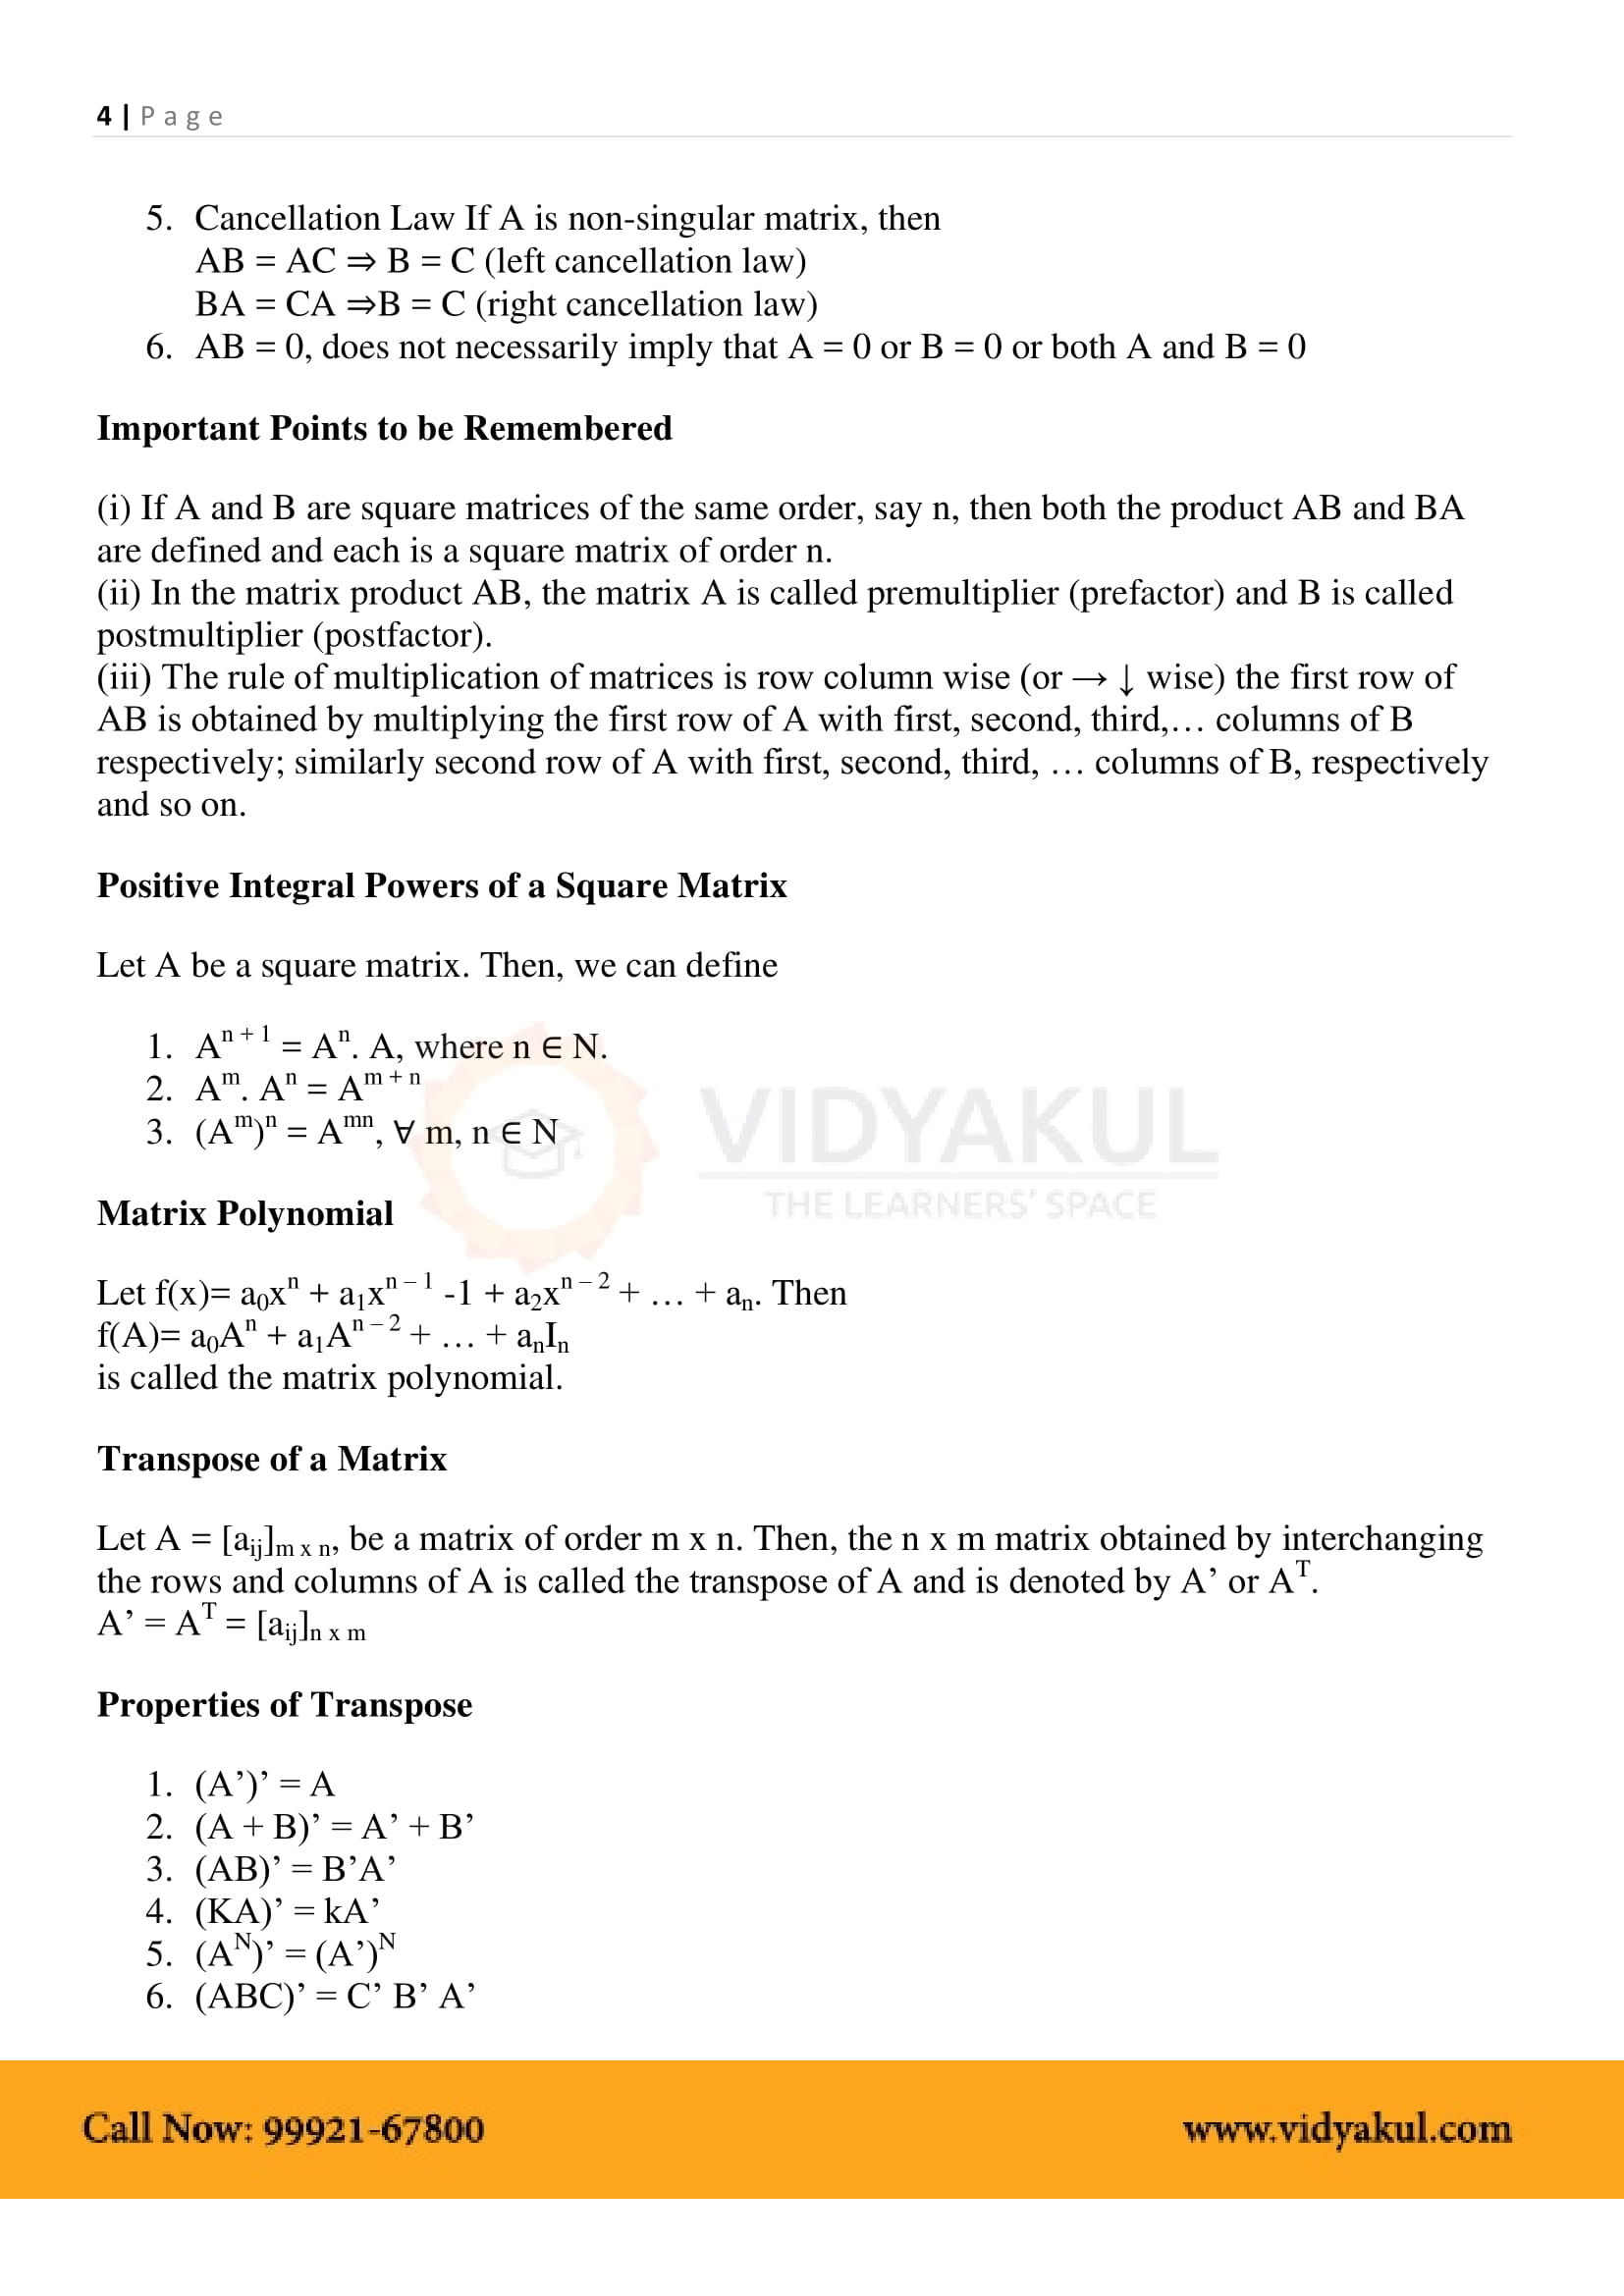 Matrices Class 12 Formulas and Notes | Vidyakul